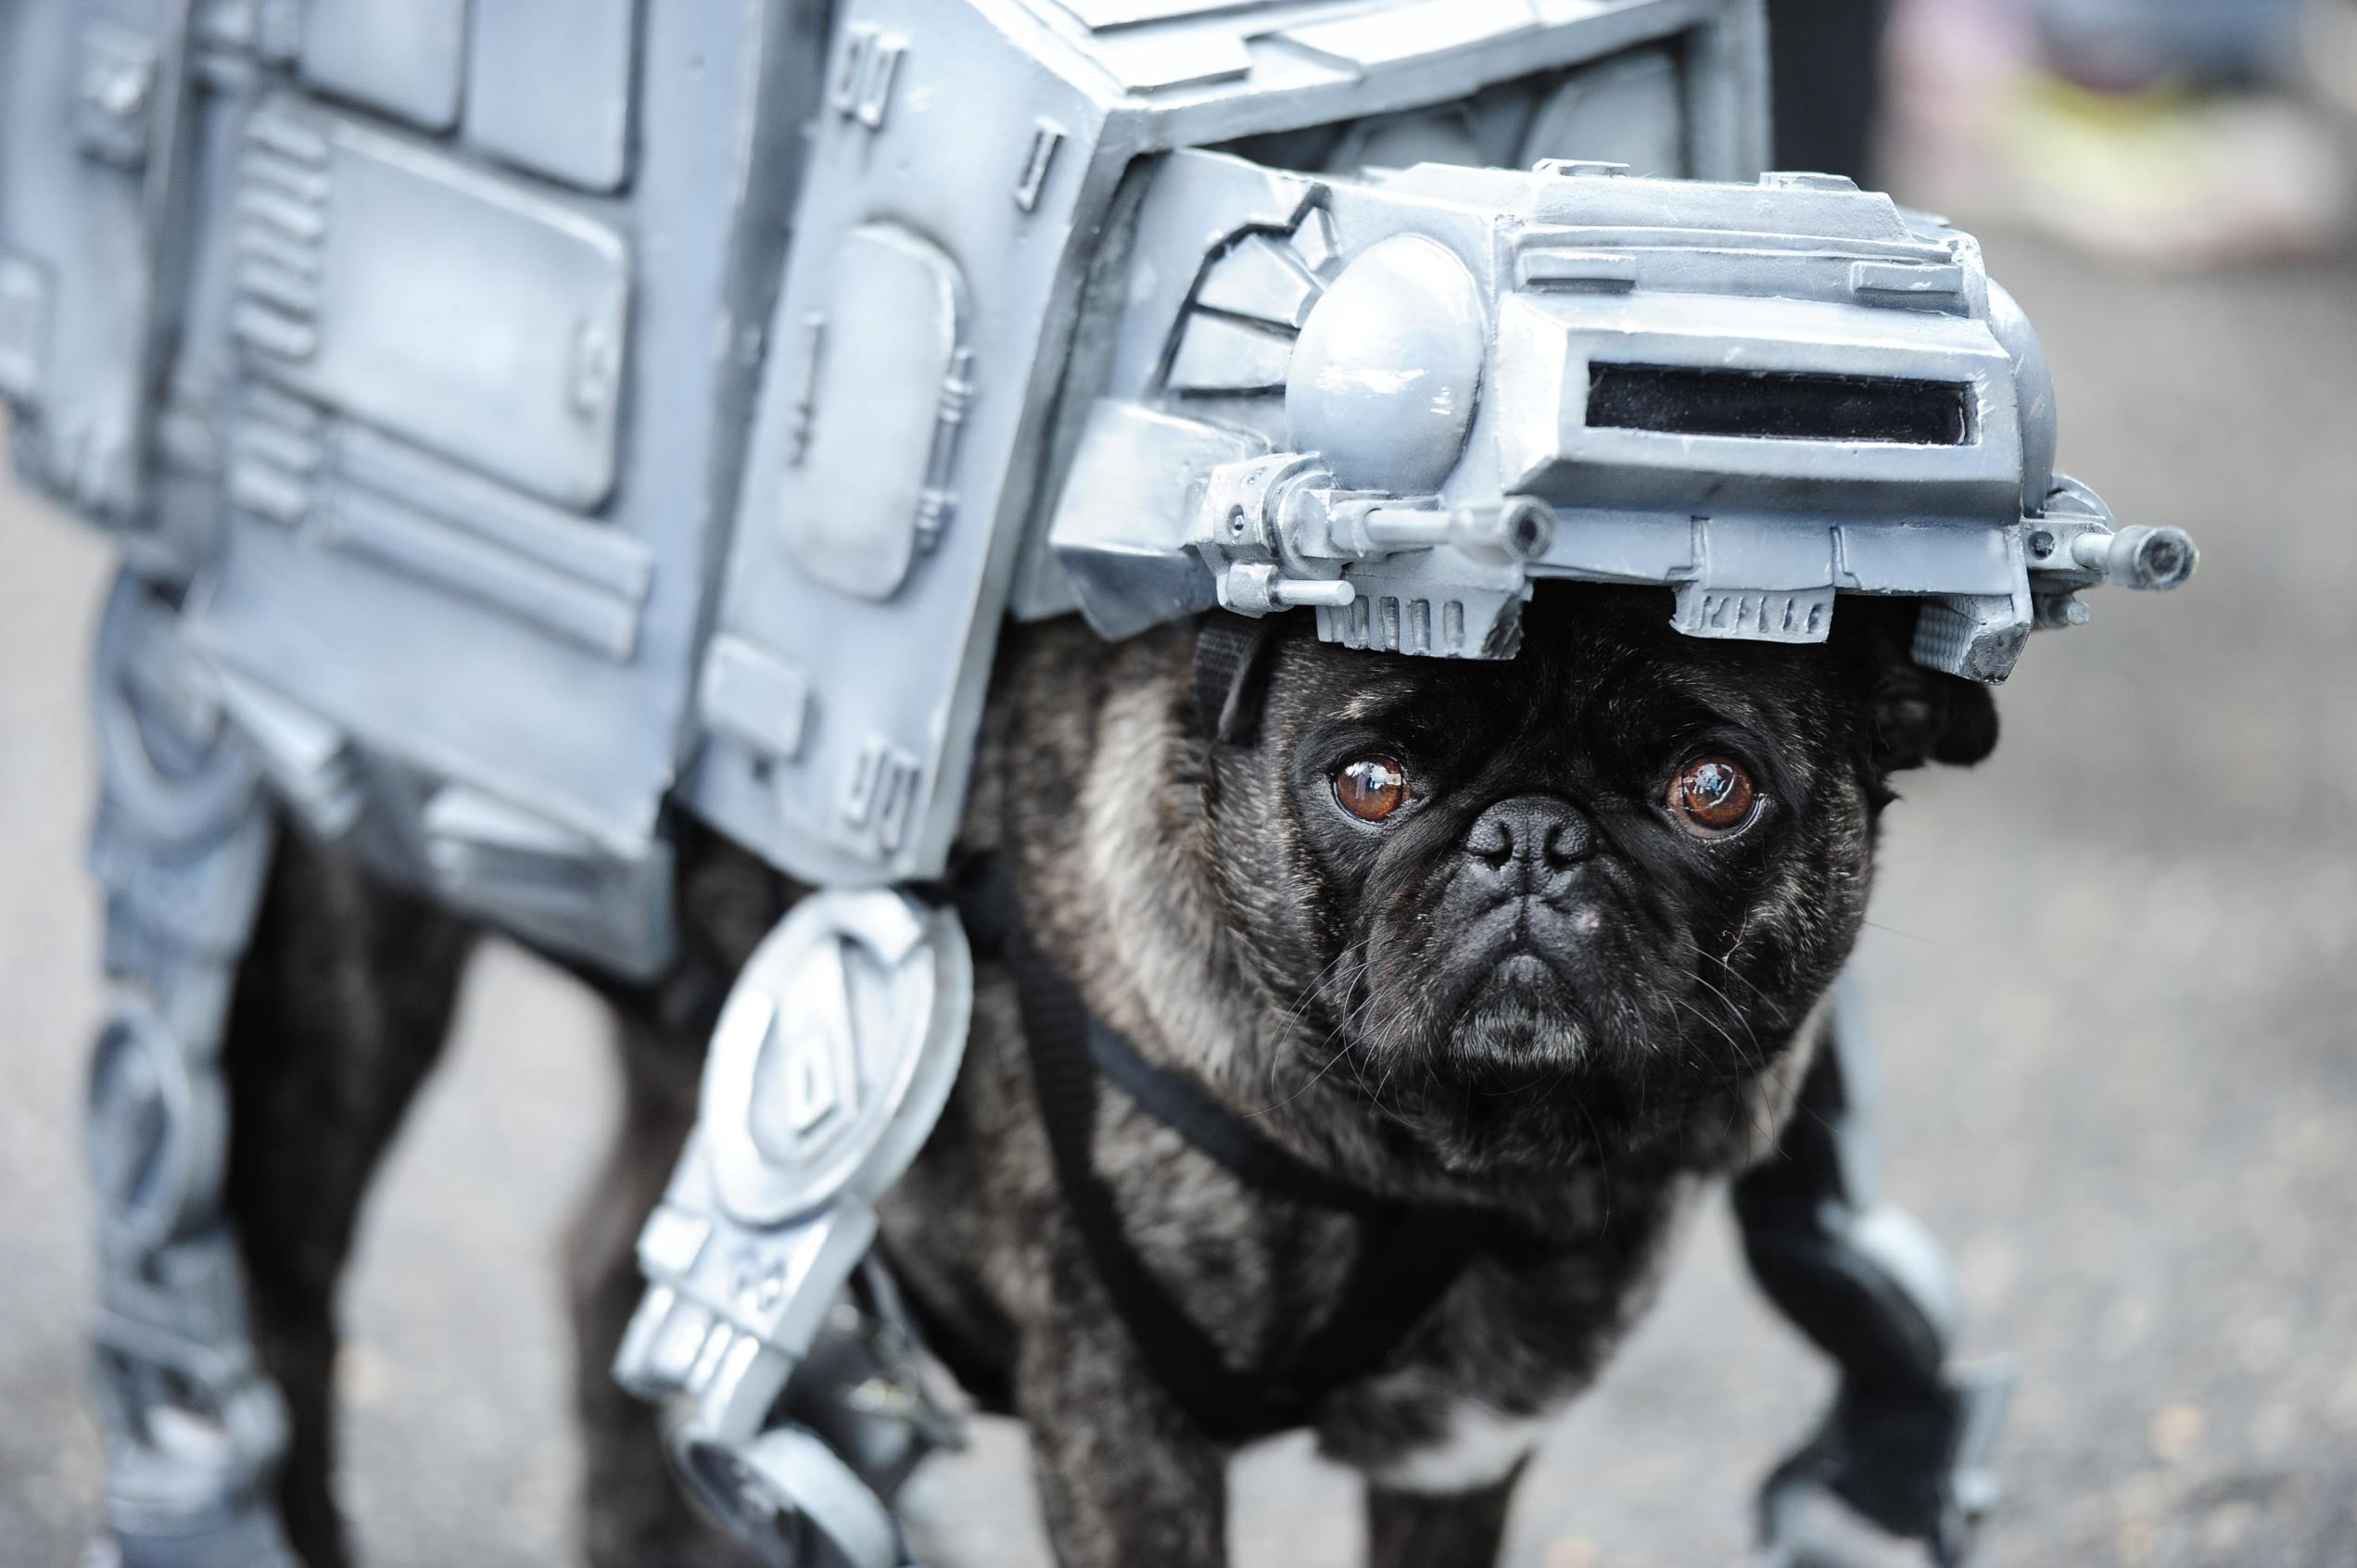 Слайд 20 из 67: Star Wars themed Pug Crawl, Portland, Oregon, America - 22 May 2016 A pug dressed as an AT-AT Walker